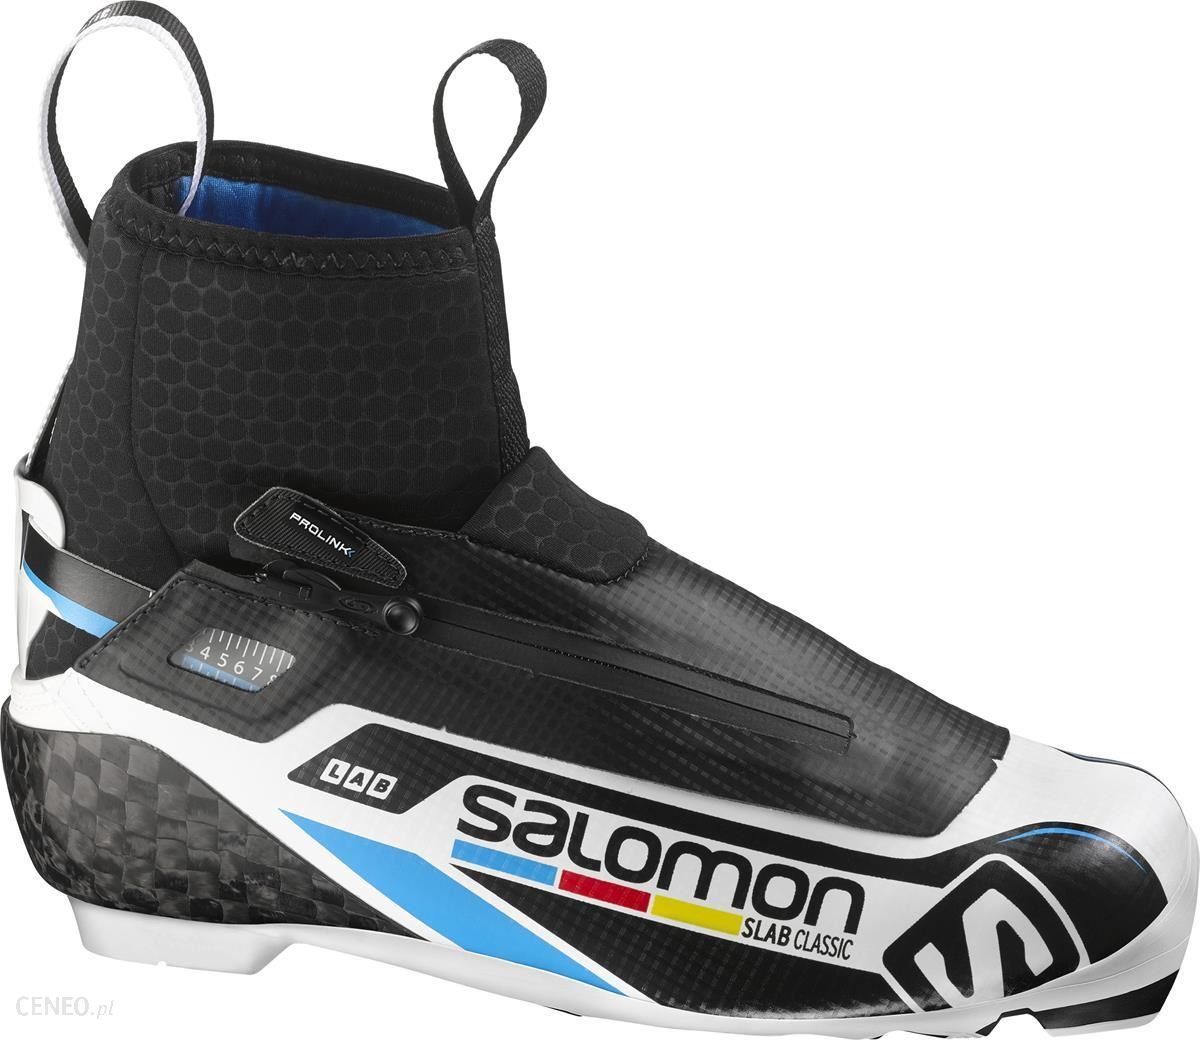 Salomon S Lab Classic Prolink 1617